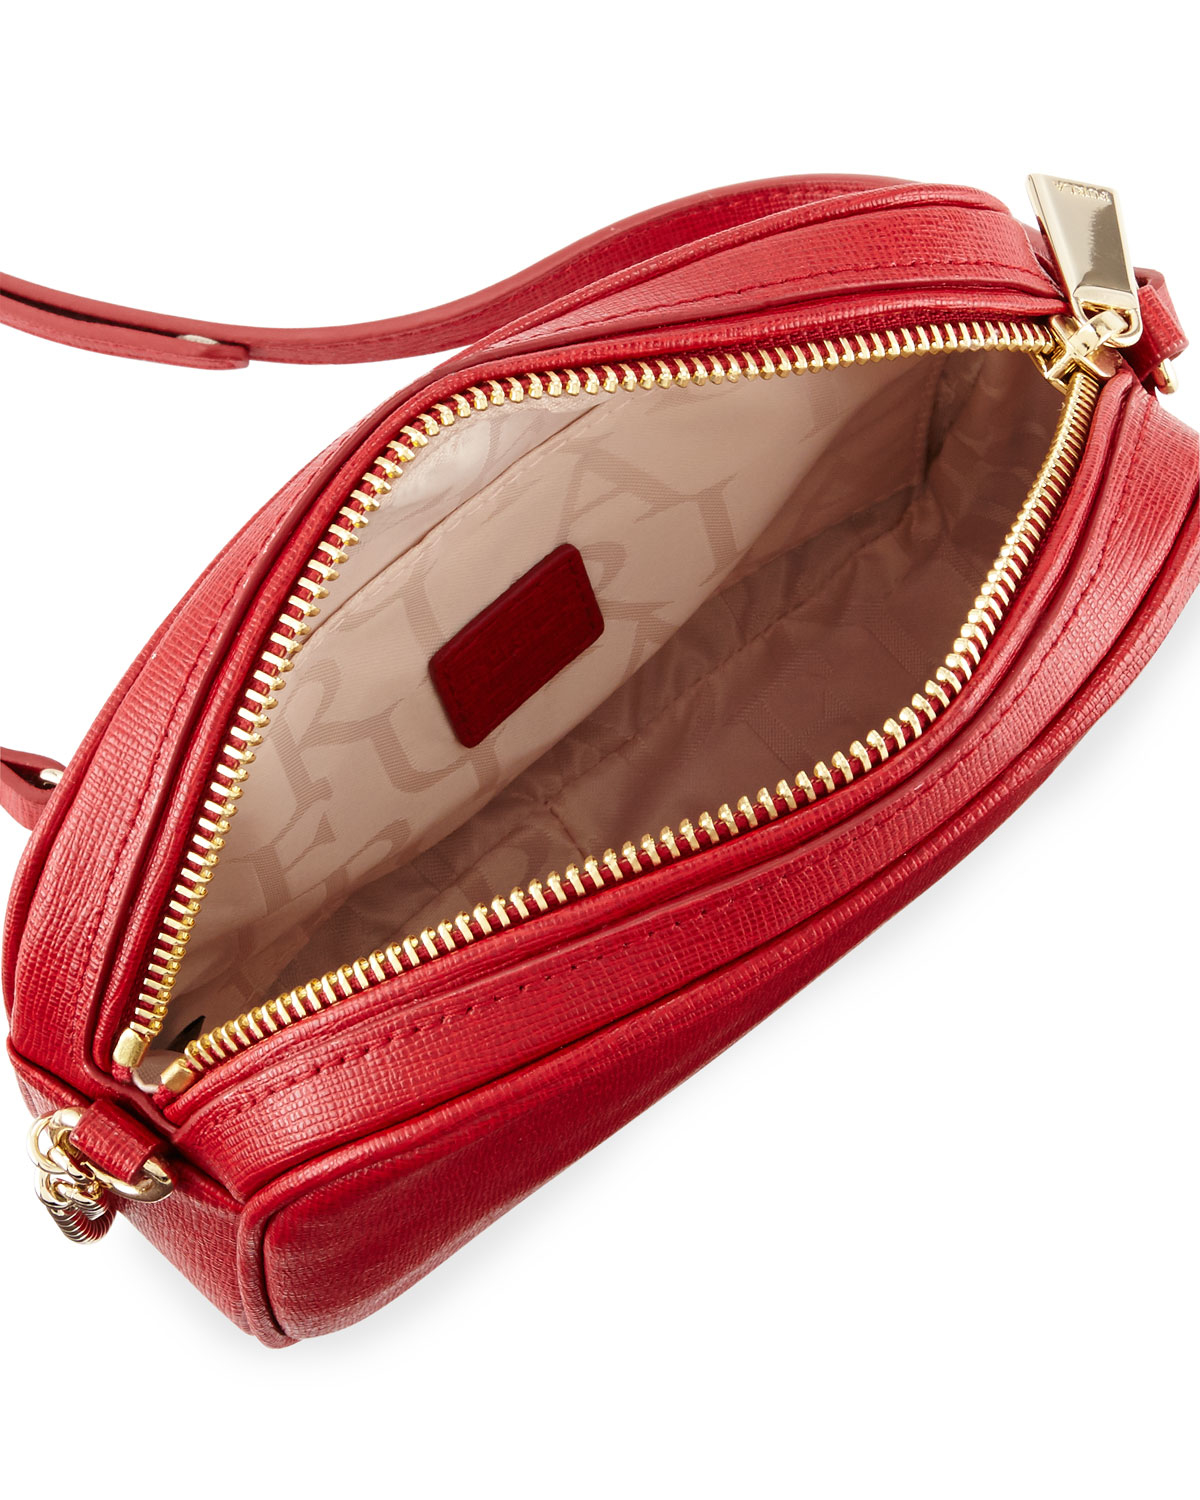 Furla Miky Mini Leather Crossbody Bag in Red | Lyst